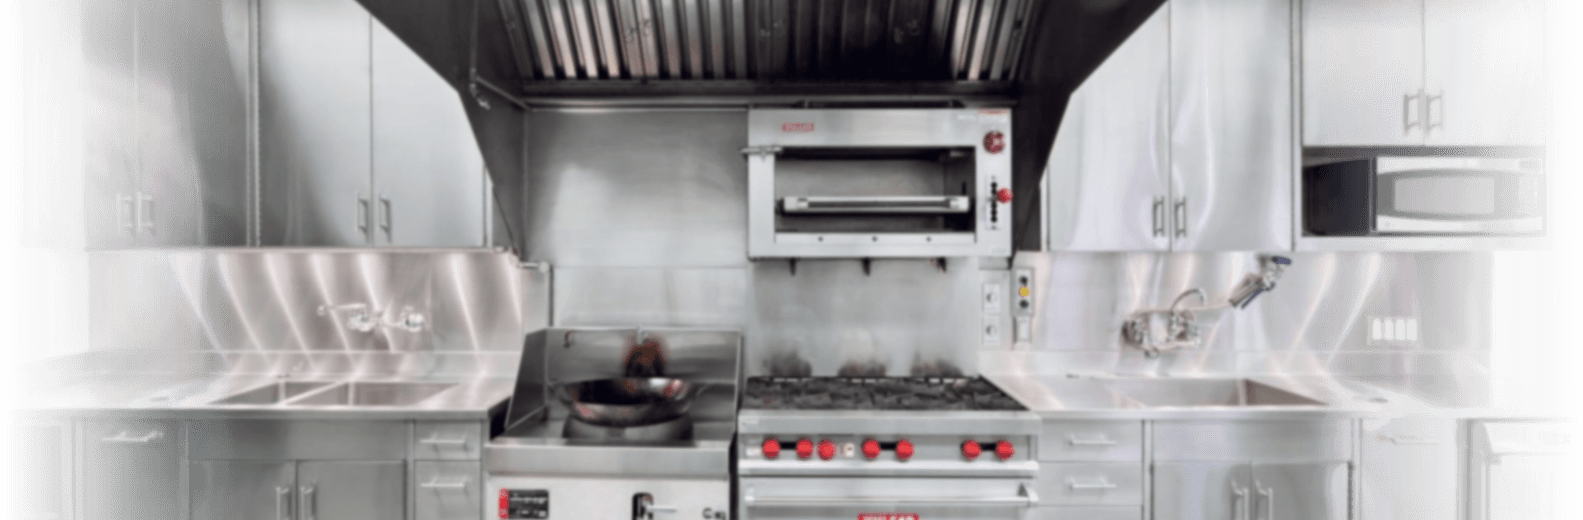 Get Restaurant Cleaner London Commercial Kitchen Cleaning